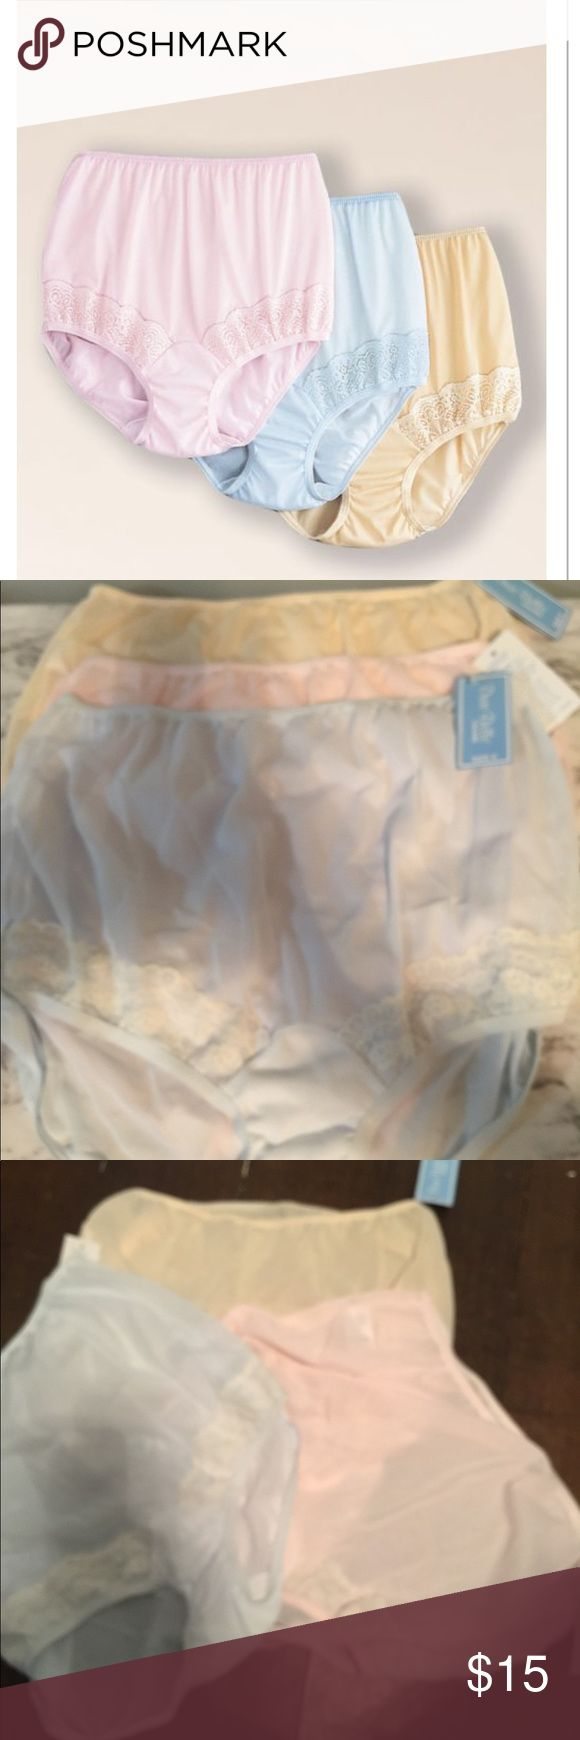 Dixie belle nylon panties. Pastel Trained I Lace with non binding . Encased waist elastic waistband. Cotton lined crotch . Pastel pink , blue, beige . dixie belle Intimates & Sleepwear Panties